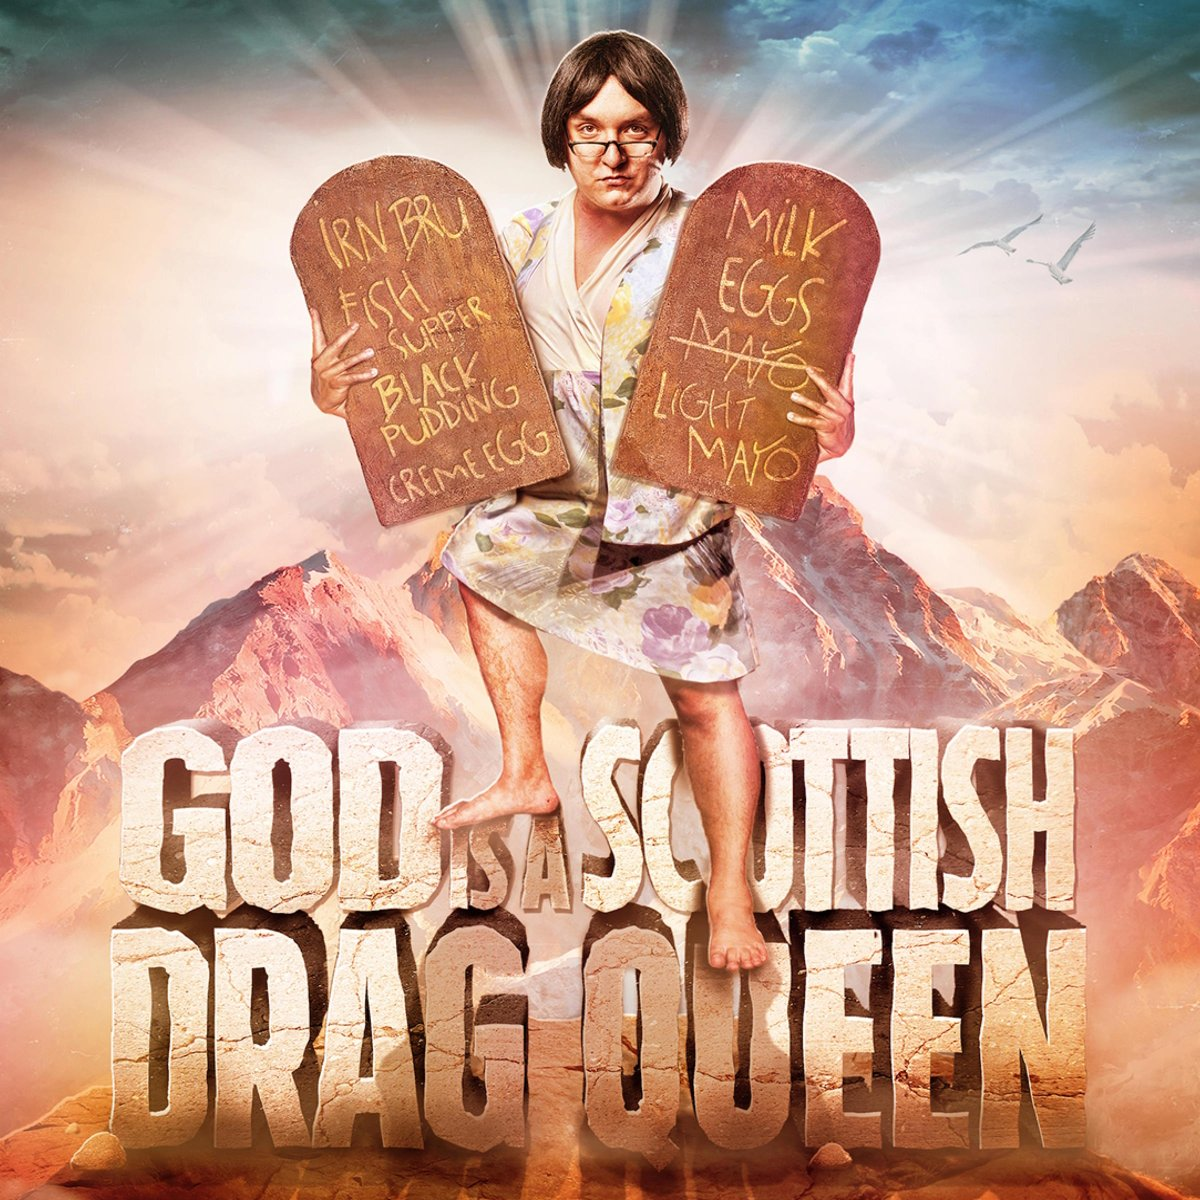 Pastel power suit? Check. Scottish accent? Check. The Lord is in the building. GOD IS A SCOTTISH DRAG QUEEN starring @mikedelamont coming to the Okanagan. Sat Mar 14 @ 7:30 at Venables Theatre in Oliver. Tix @ info http://ow.ly/utzh50yrRqC #oliverbc #okanaganpic.twitter.com/ejJsERyRpx